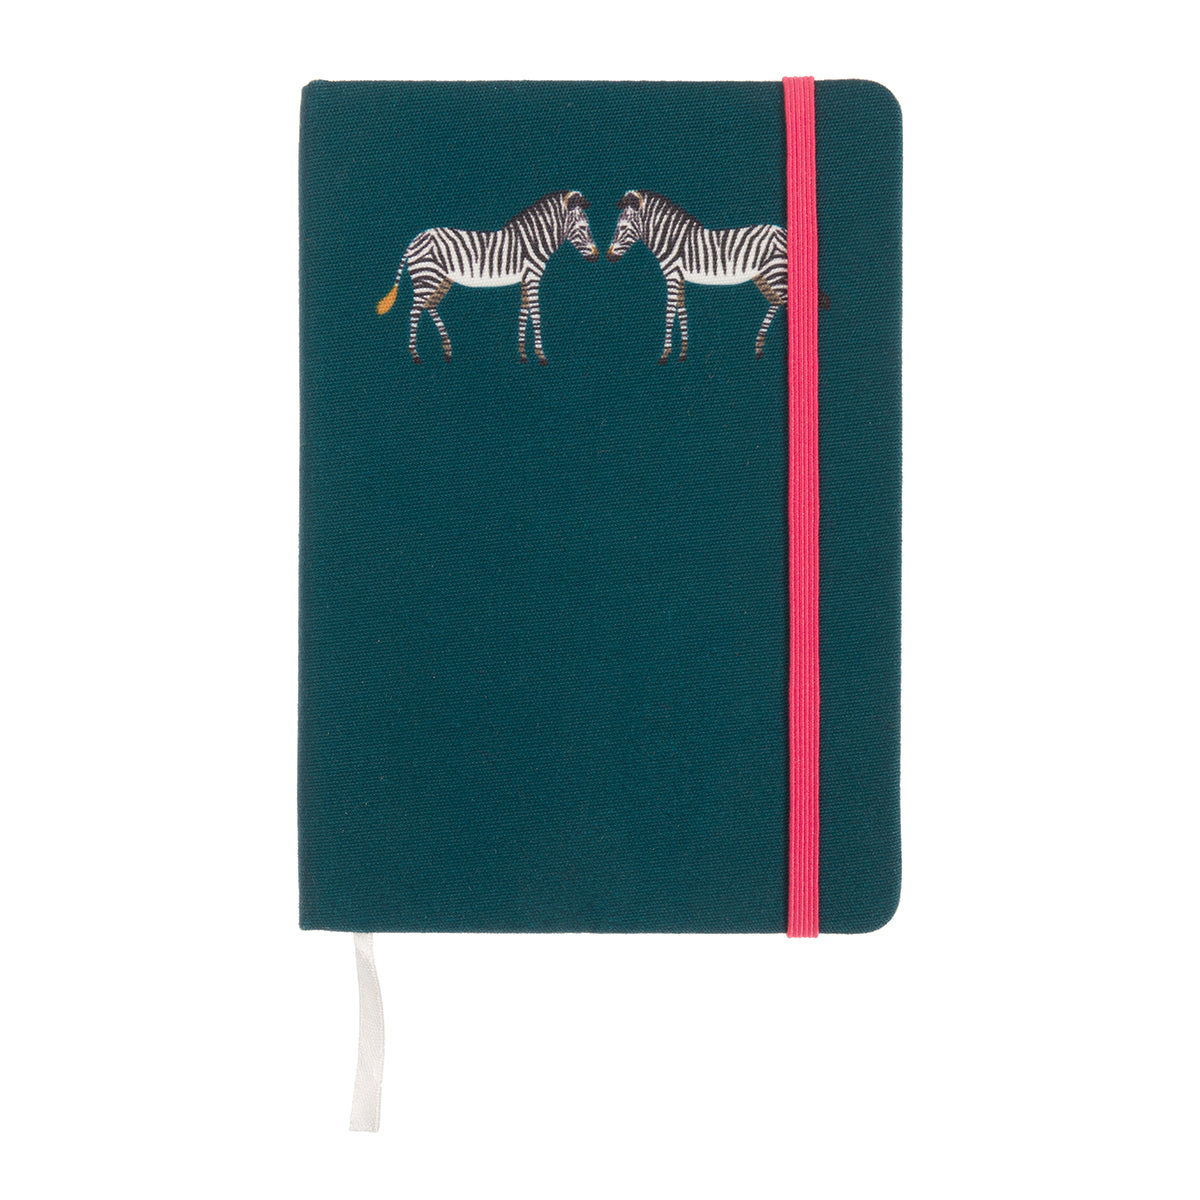 Zebra Small Fabric Notebook